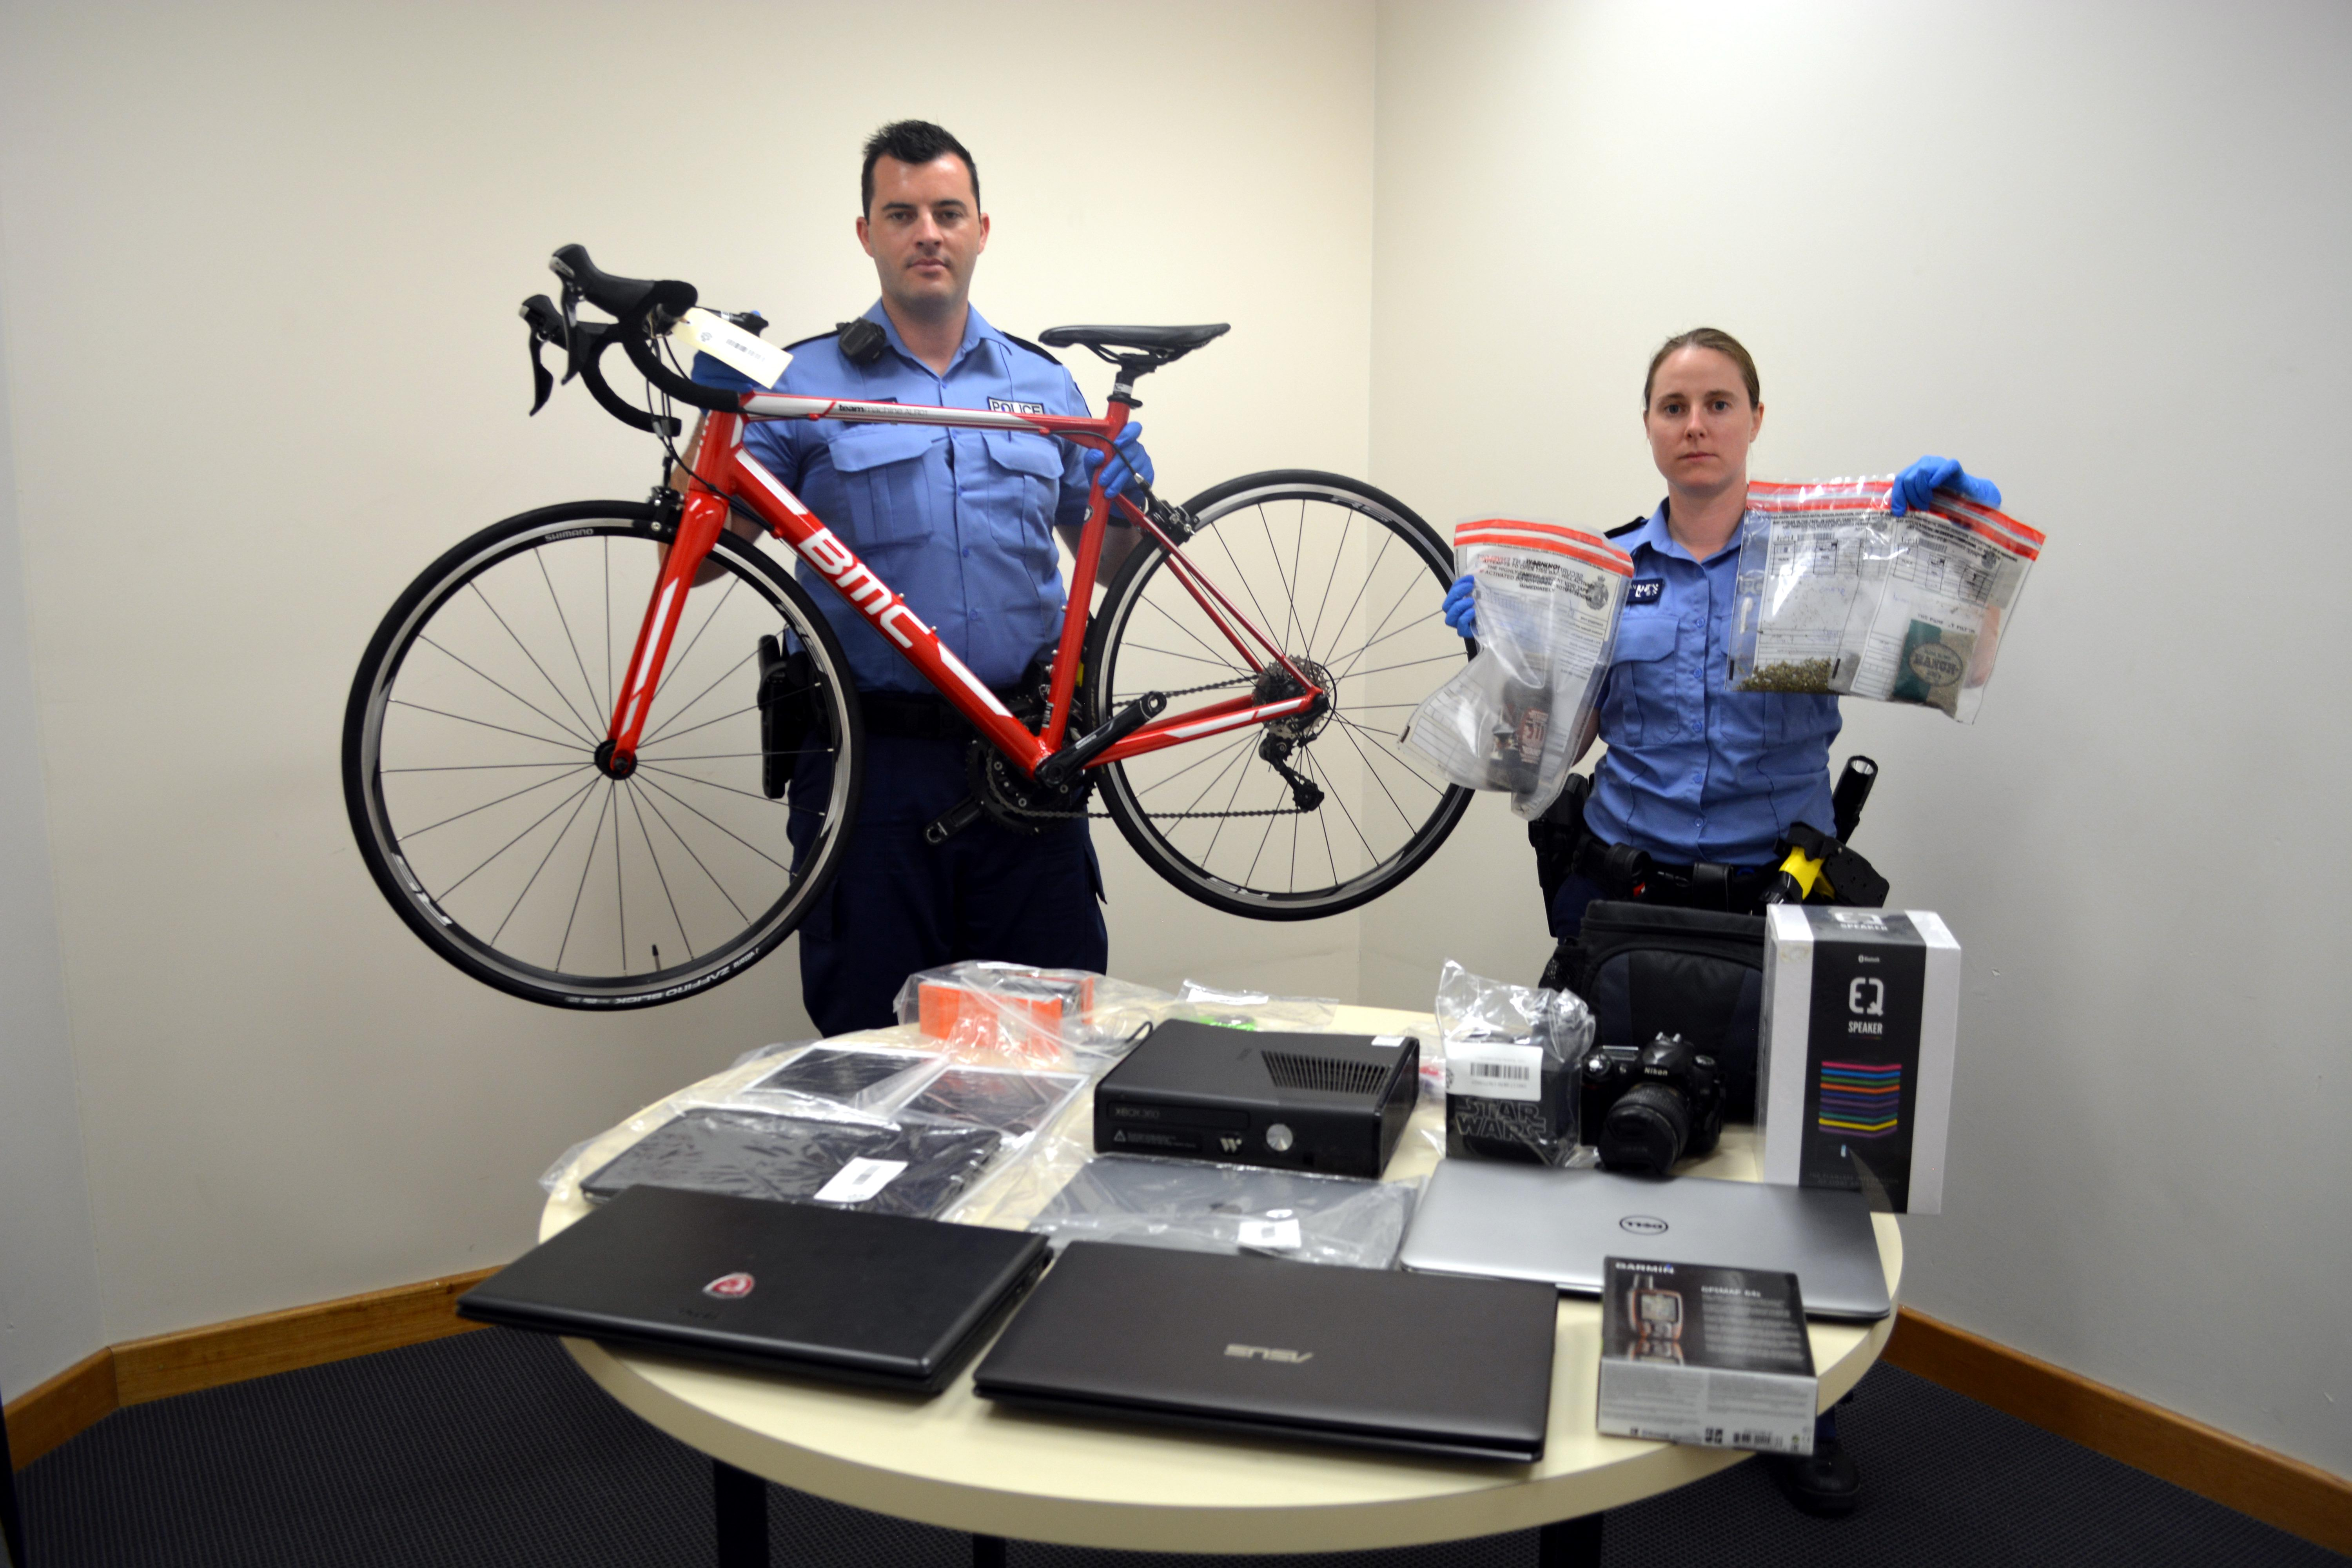 Drugs, stolen property recovered after raid on Maylands home